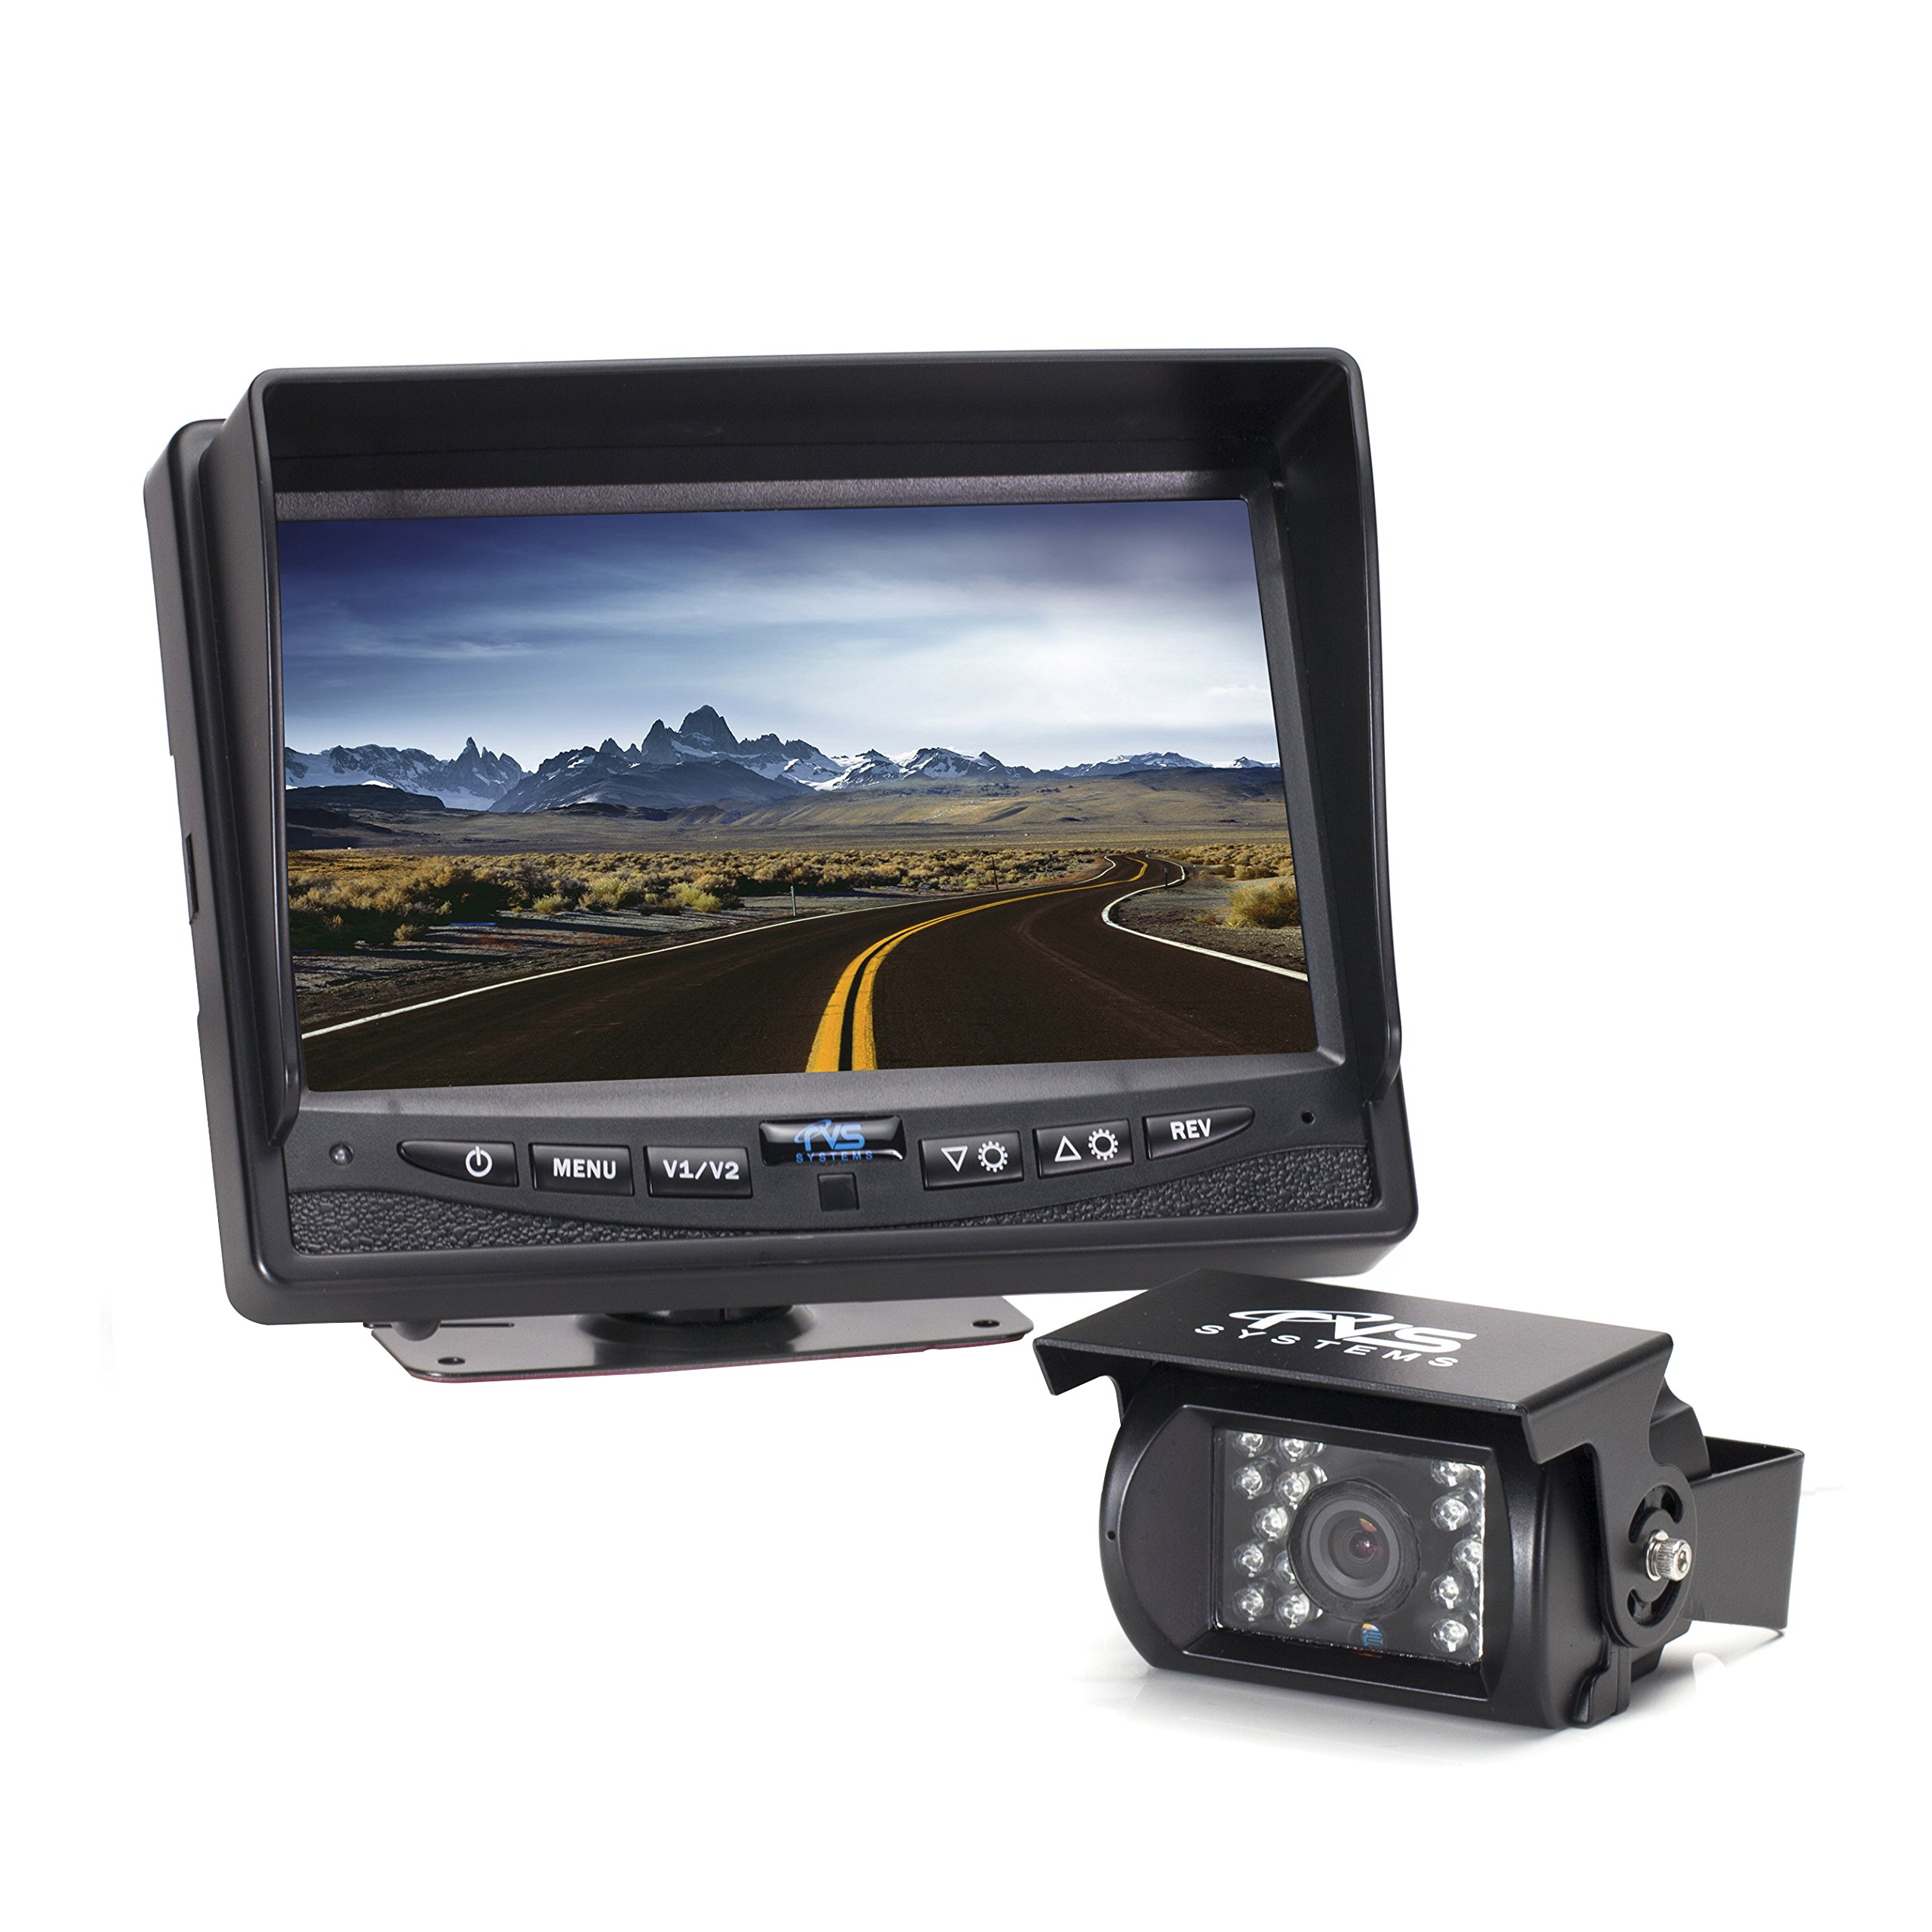 Rear View Safety Backup Camera System with 7'' Display (Black) RVS-770613 by Rear View Safety